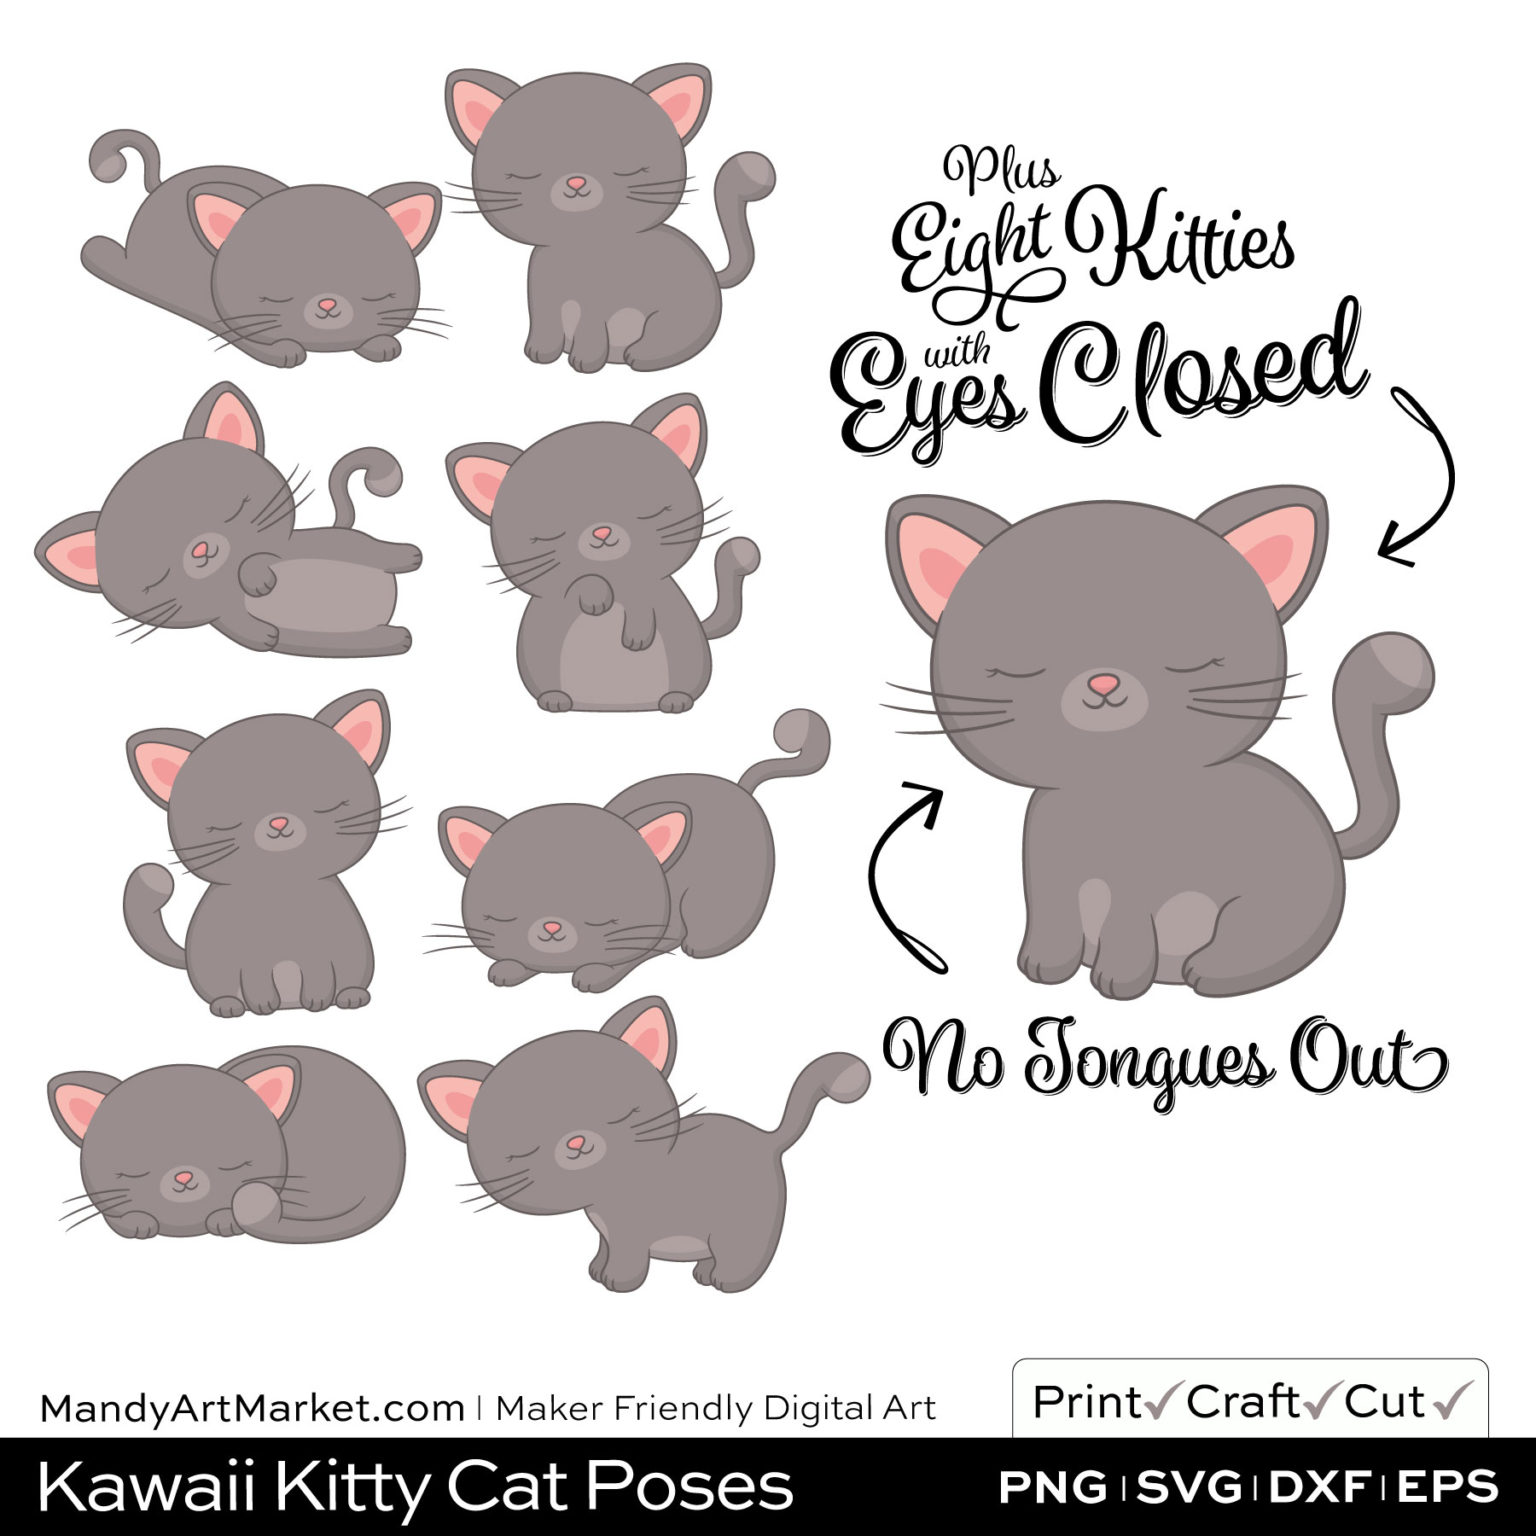 Smoke Gray Kawaii Kitty Cat Poses Clipart PNGs Included in Download